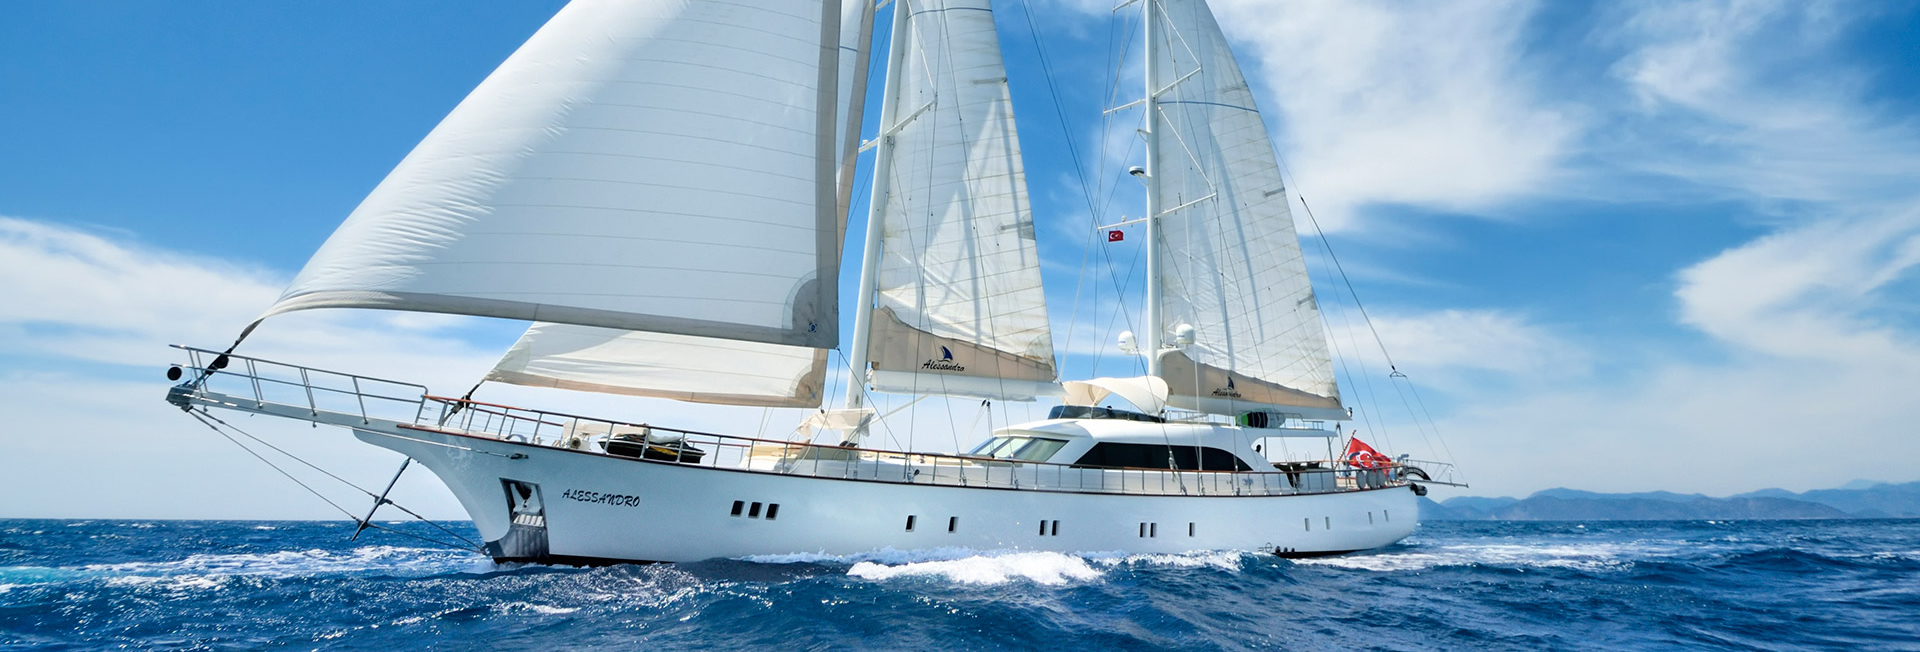 Luxury Yacht Charter